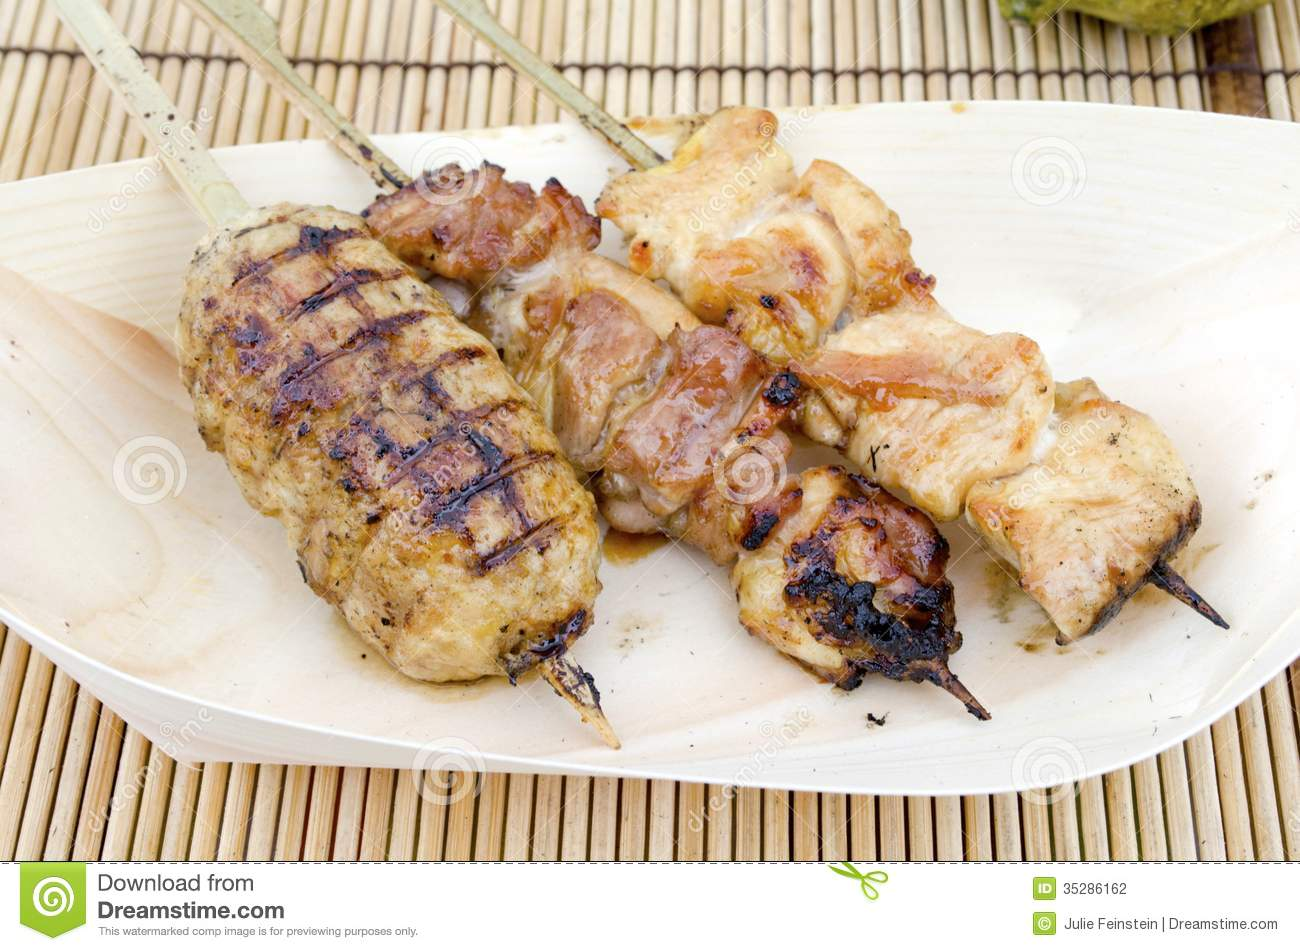 Yakitori meats skewered and grilled Japanese style.